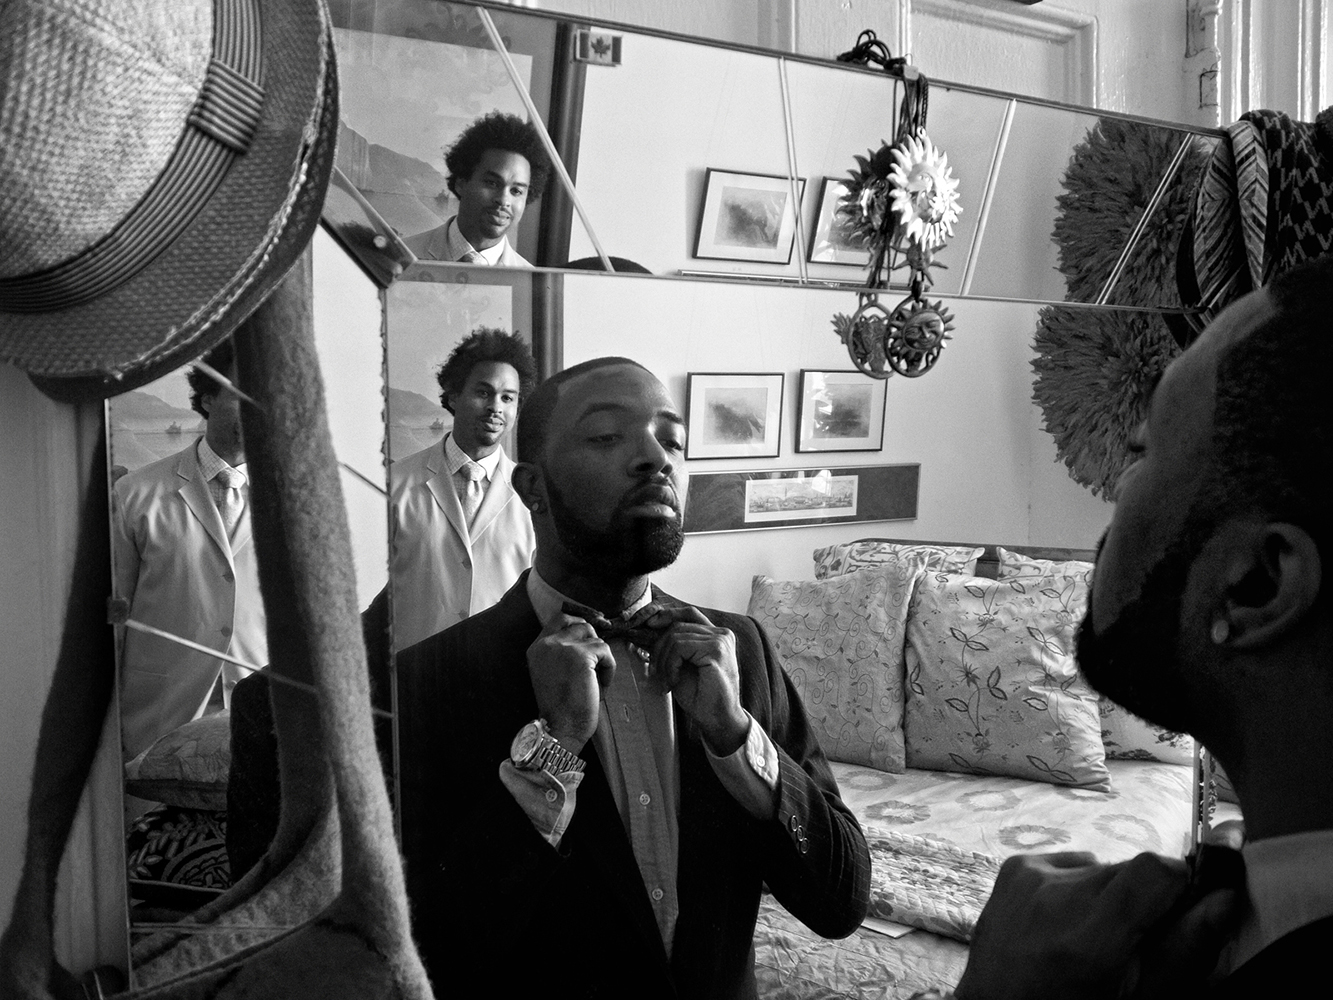 Zun Lee,  Jerome Williams ties his first bow tie, with father James Reynolds observing , Harlem, NY, 2011